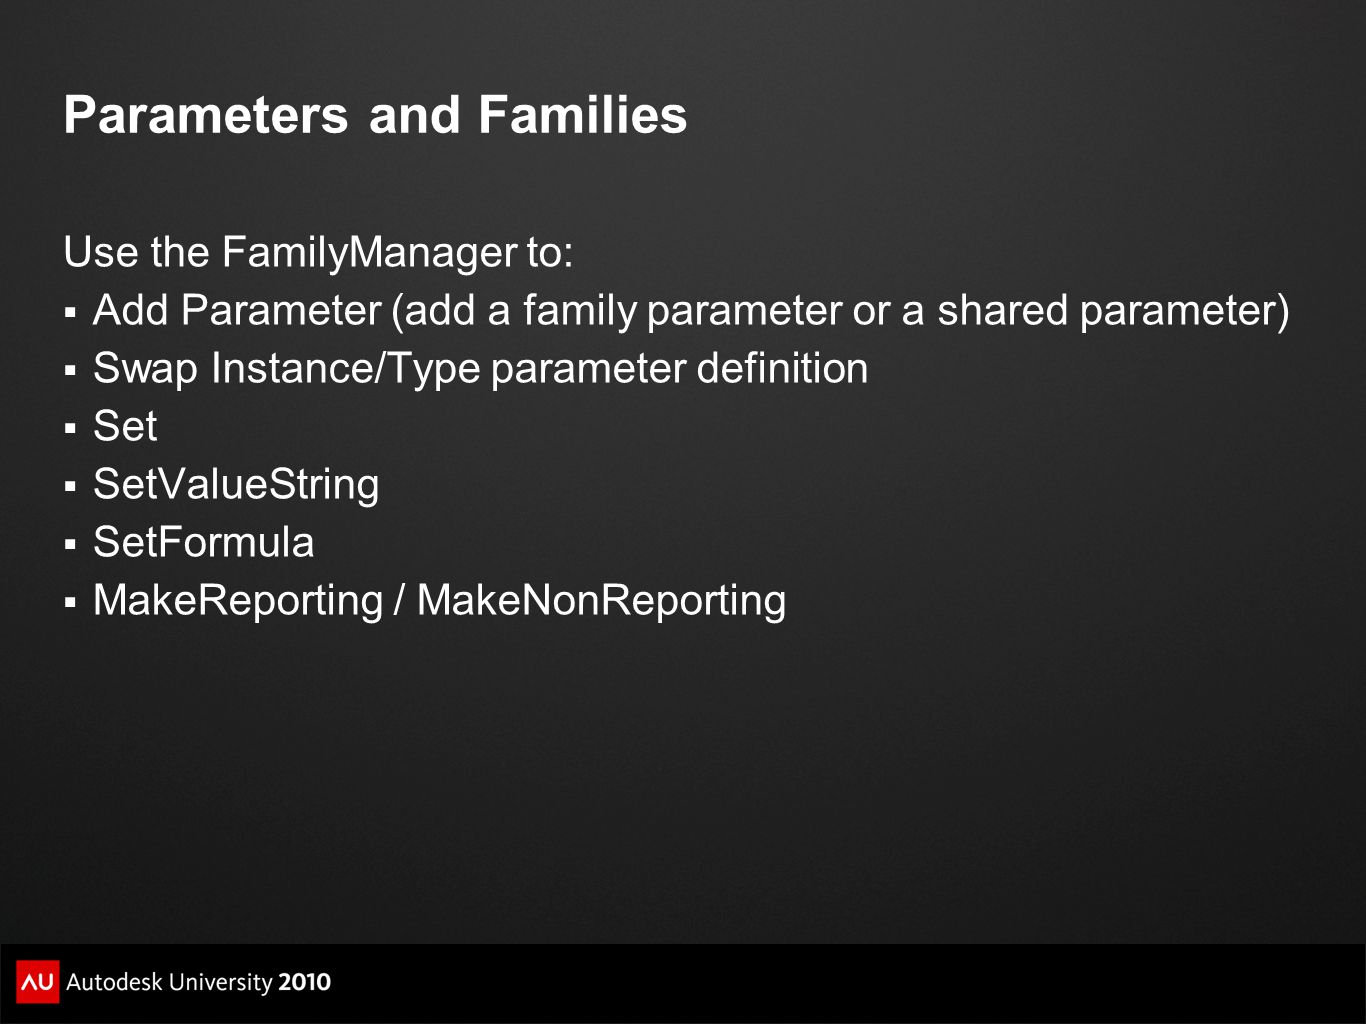 Parameters and Families